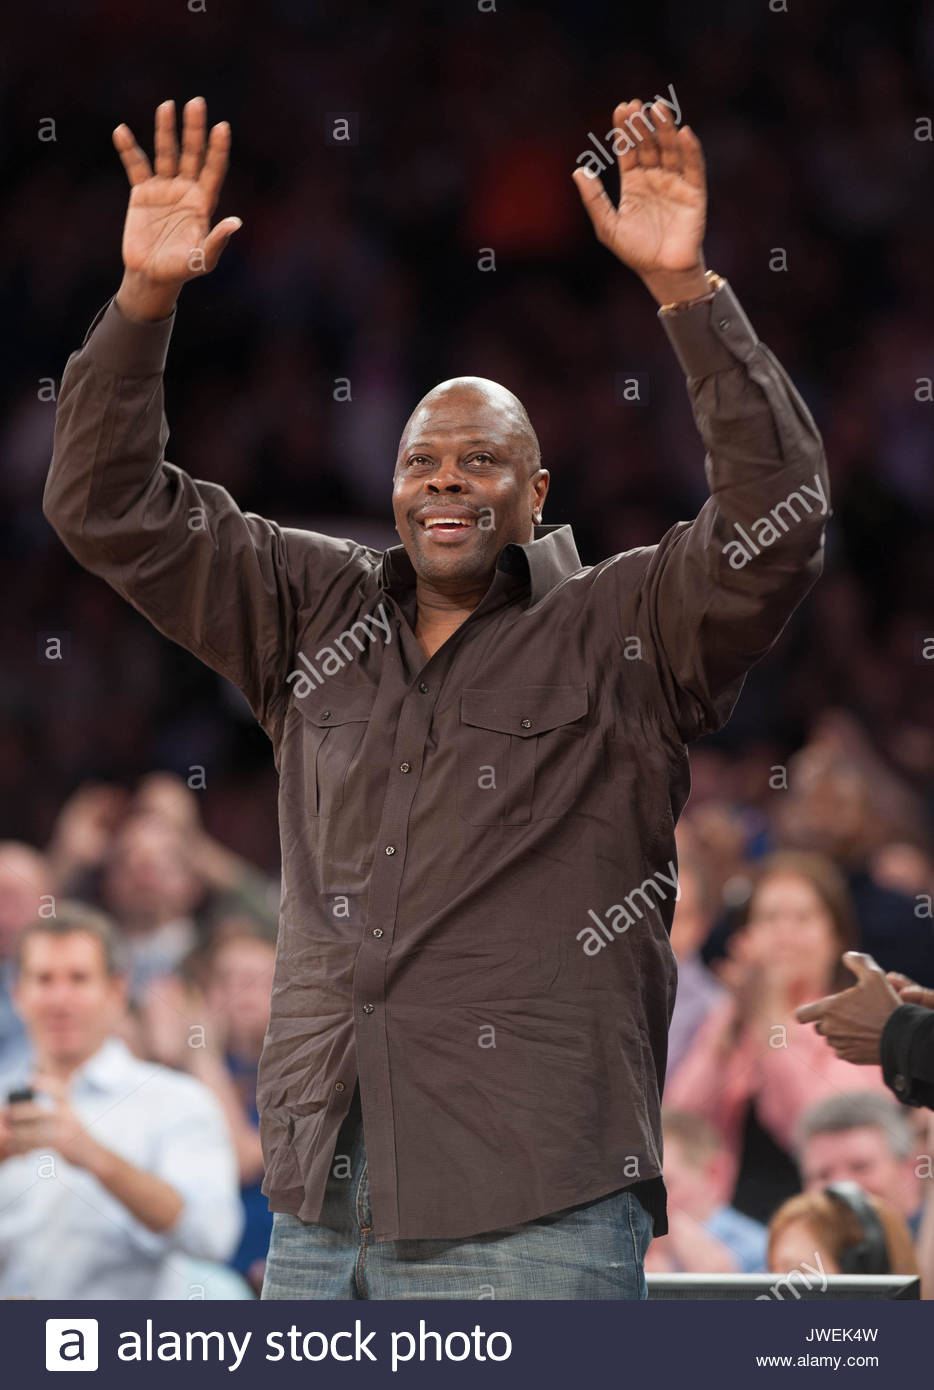 Patrick Ewing Howard Stern and wife Beth Ostrosky Stern courtside